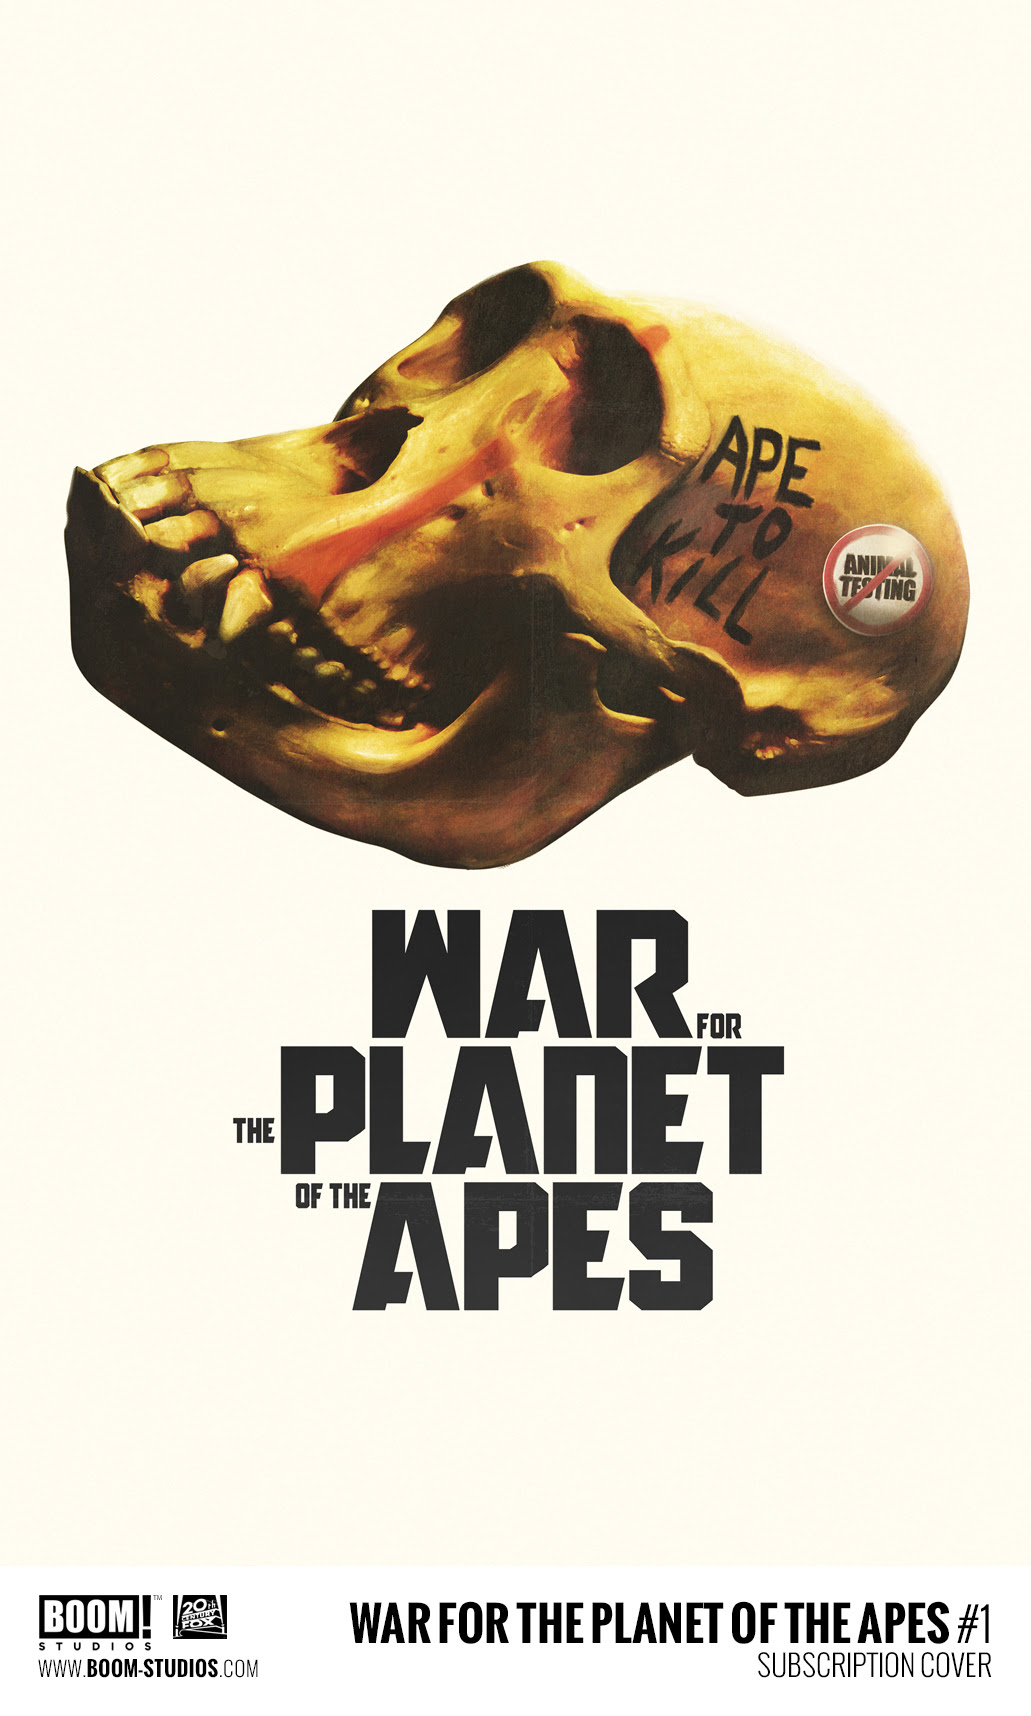 Boom! Studios and Twentieth Century Fox Announce War for the Planet of the Apes Comic Book Series